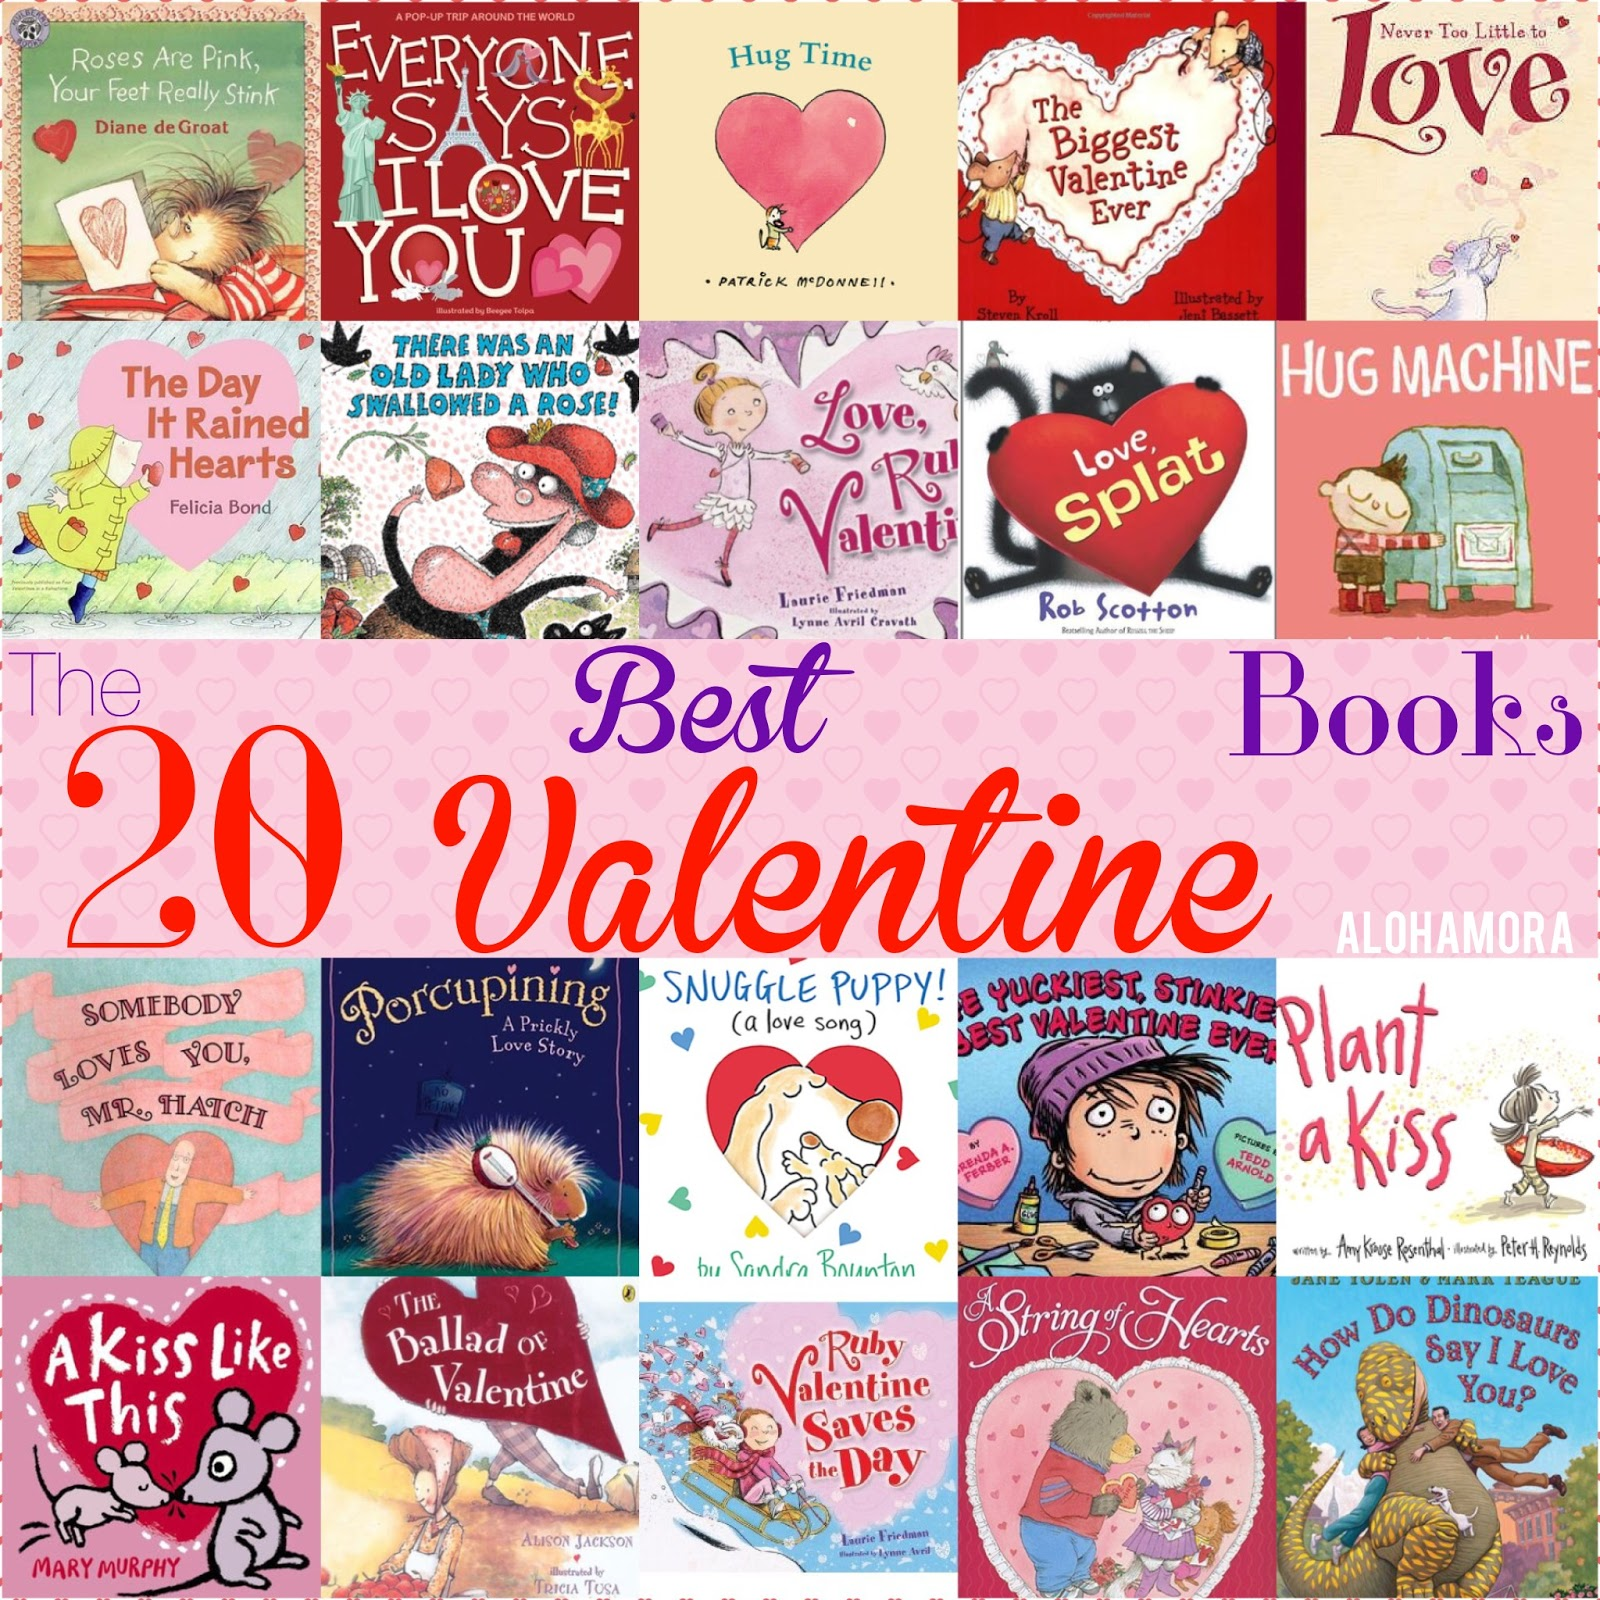 The 20 absolute BEST Valentine Books on the market today.  These 20 books make great read alouds, are picture books as well as non-ficiton books.  These reads are enjoyed by toddlers, preschoolers, Kindergarten, 1st , 2nd, 3rd, 4th, 5th, and 6th graders at least.  Parents and teachers will enjoy reading them as well.  Alohamora Open a Book http://alohamoraopenabook.blogspot.com/